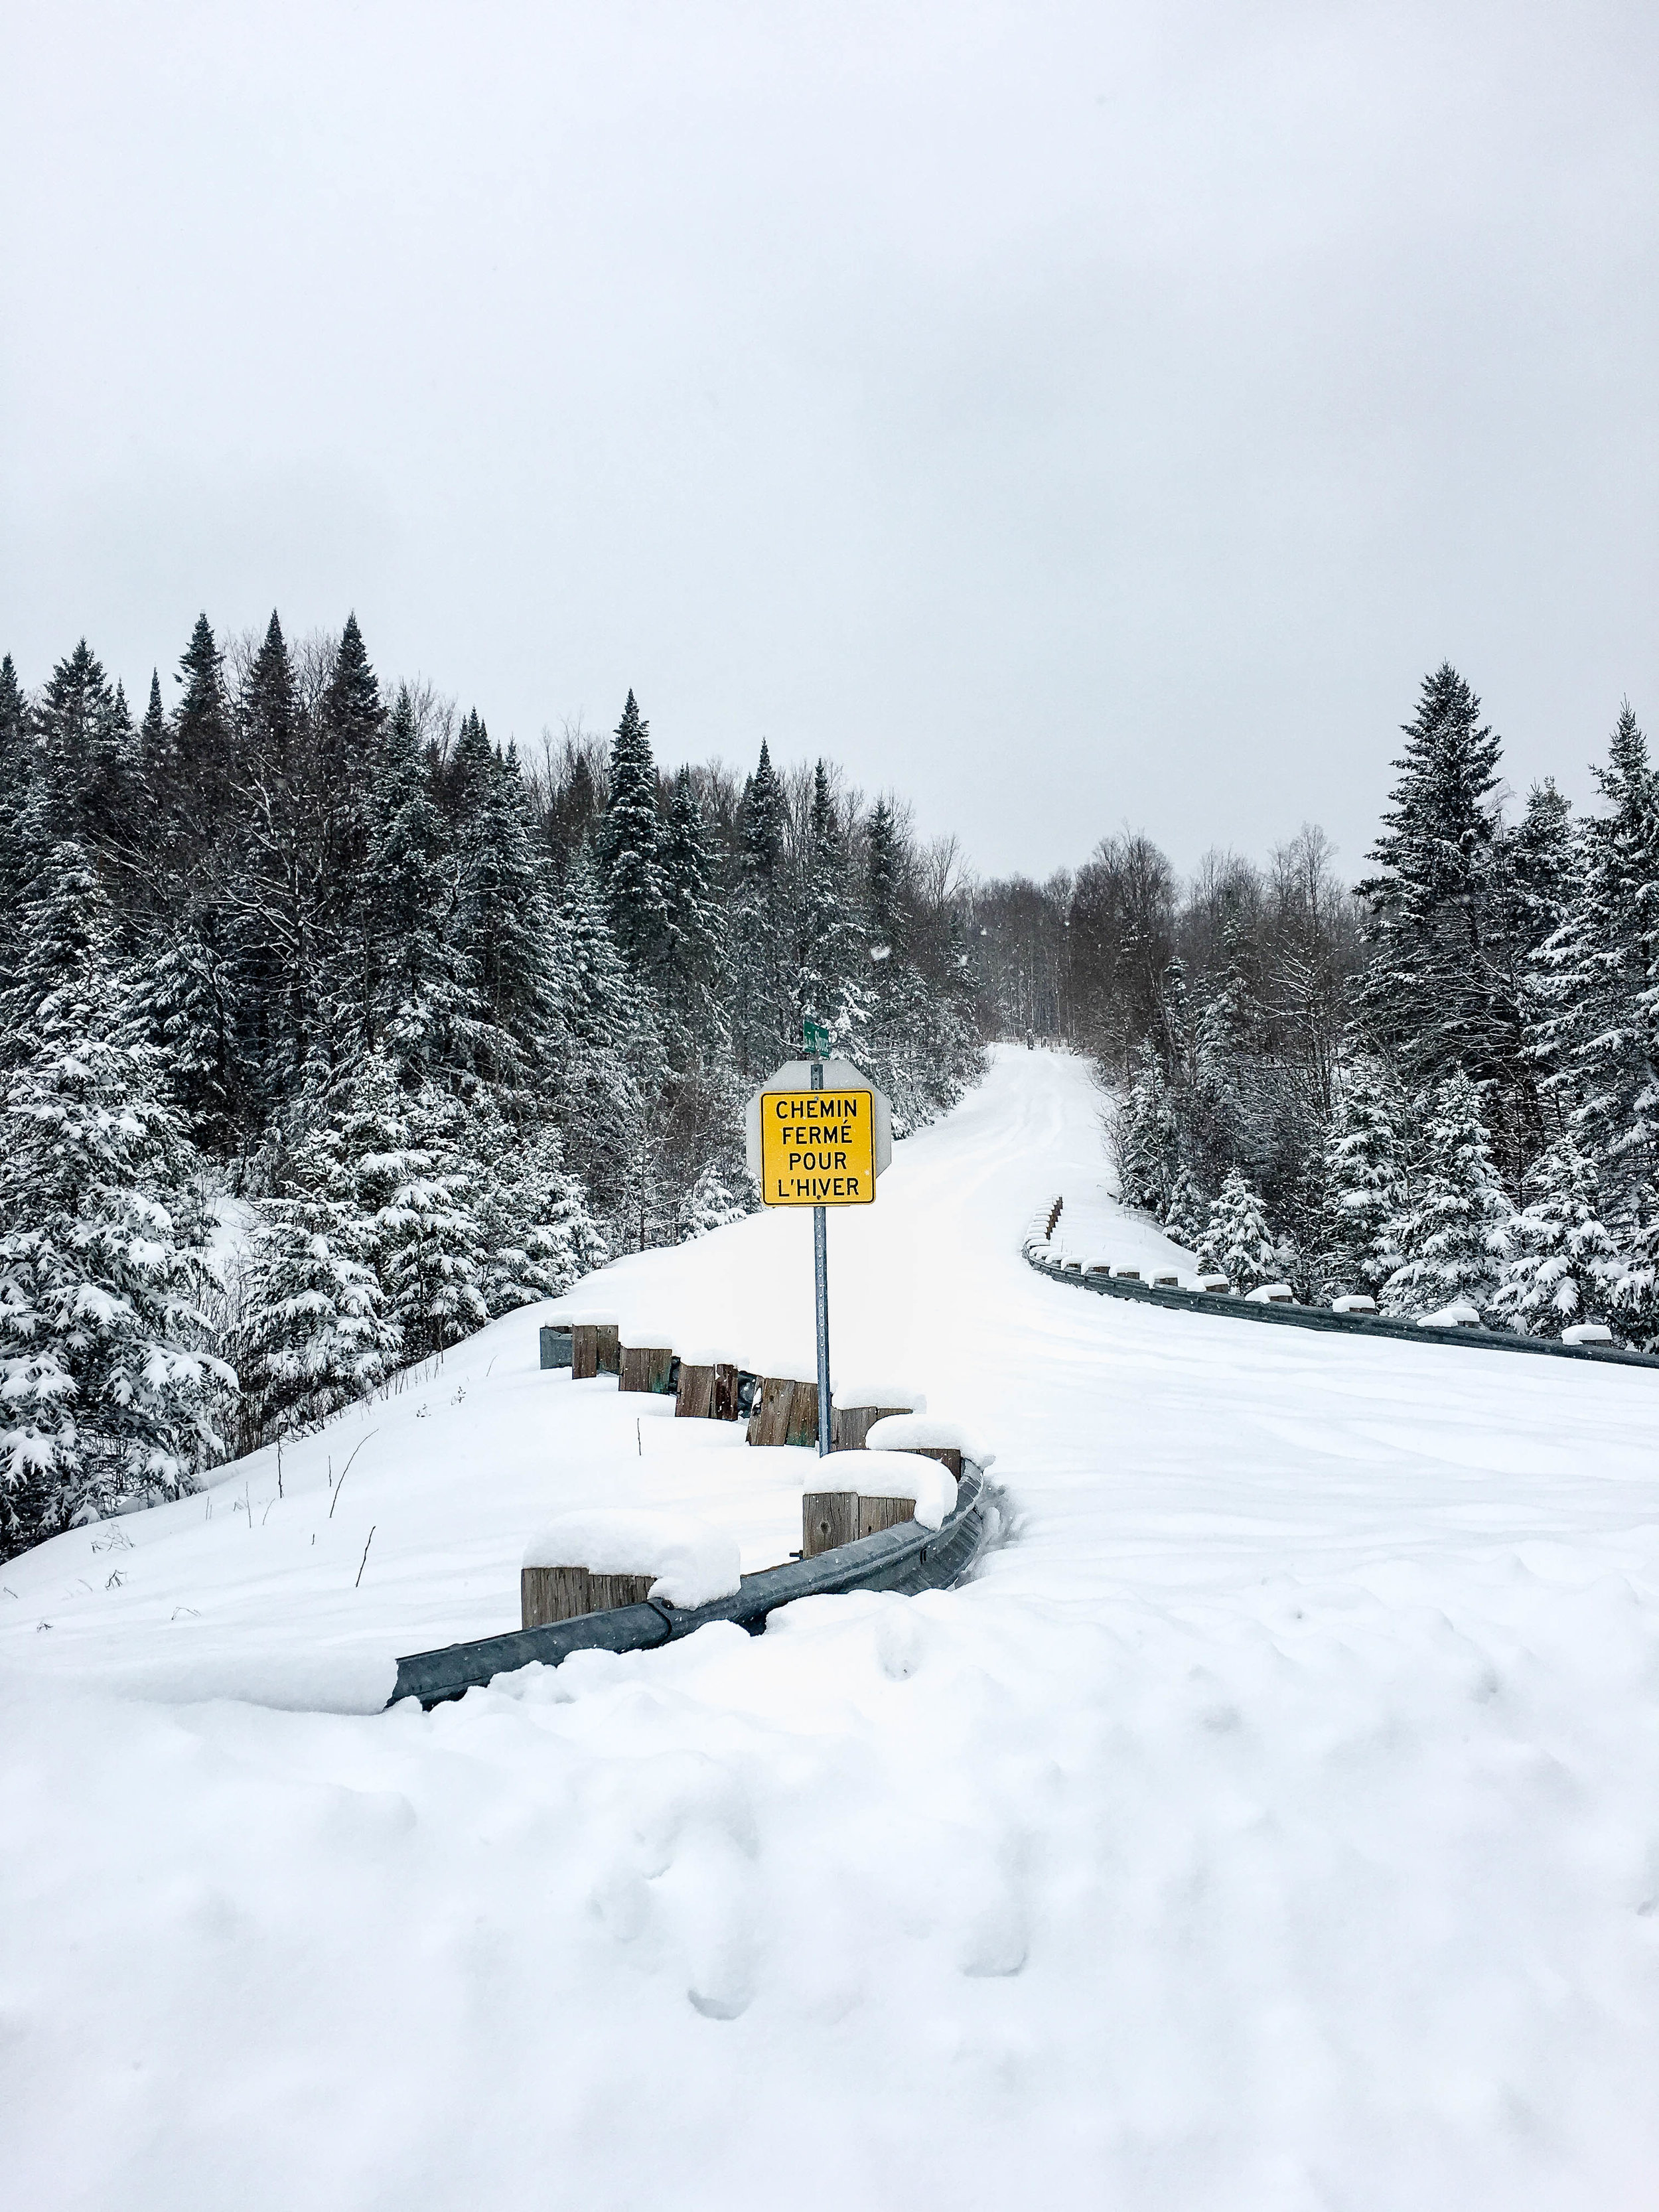 Walk in the mountains in Coaticook. There is are evergreens with a lot of snow and a yellow sign